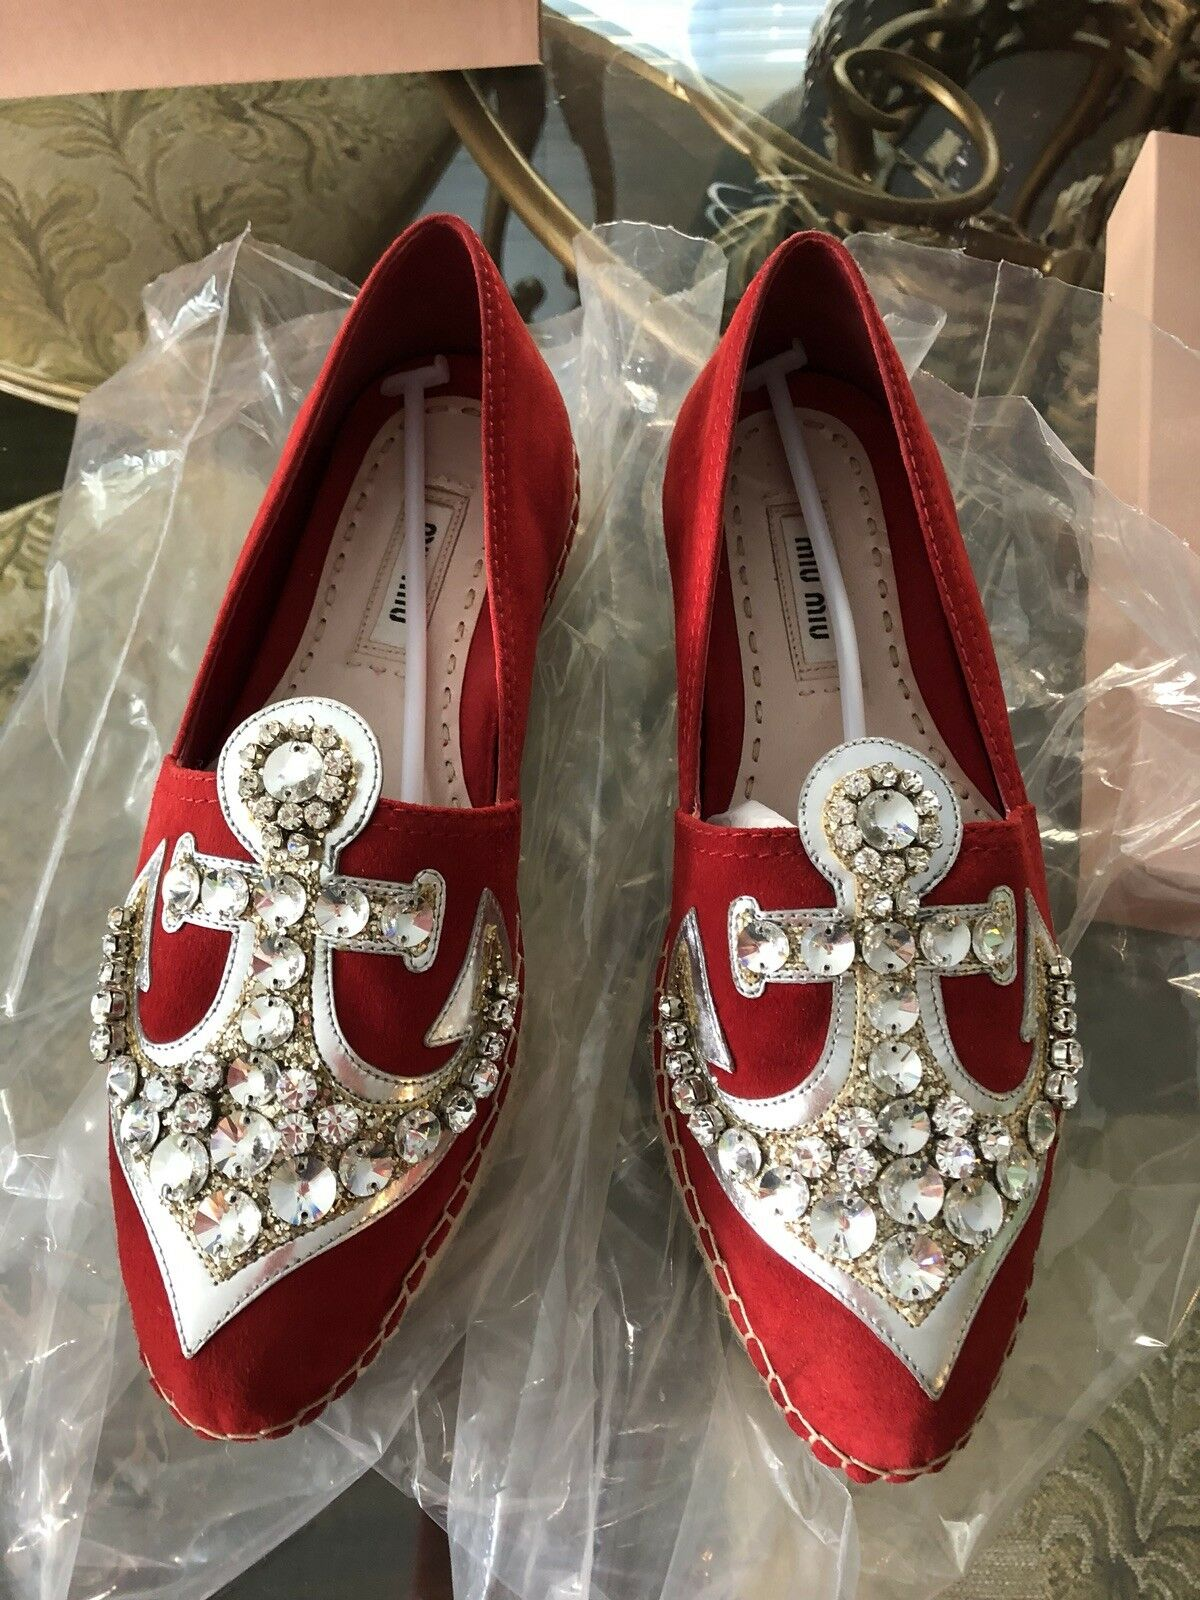 100% Authentic Miu Miu Red Suded with Crystal shoes Size  36.5  800